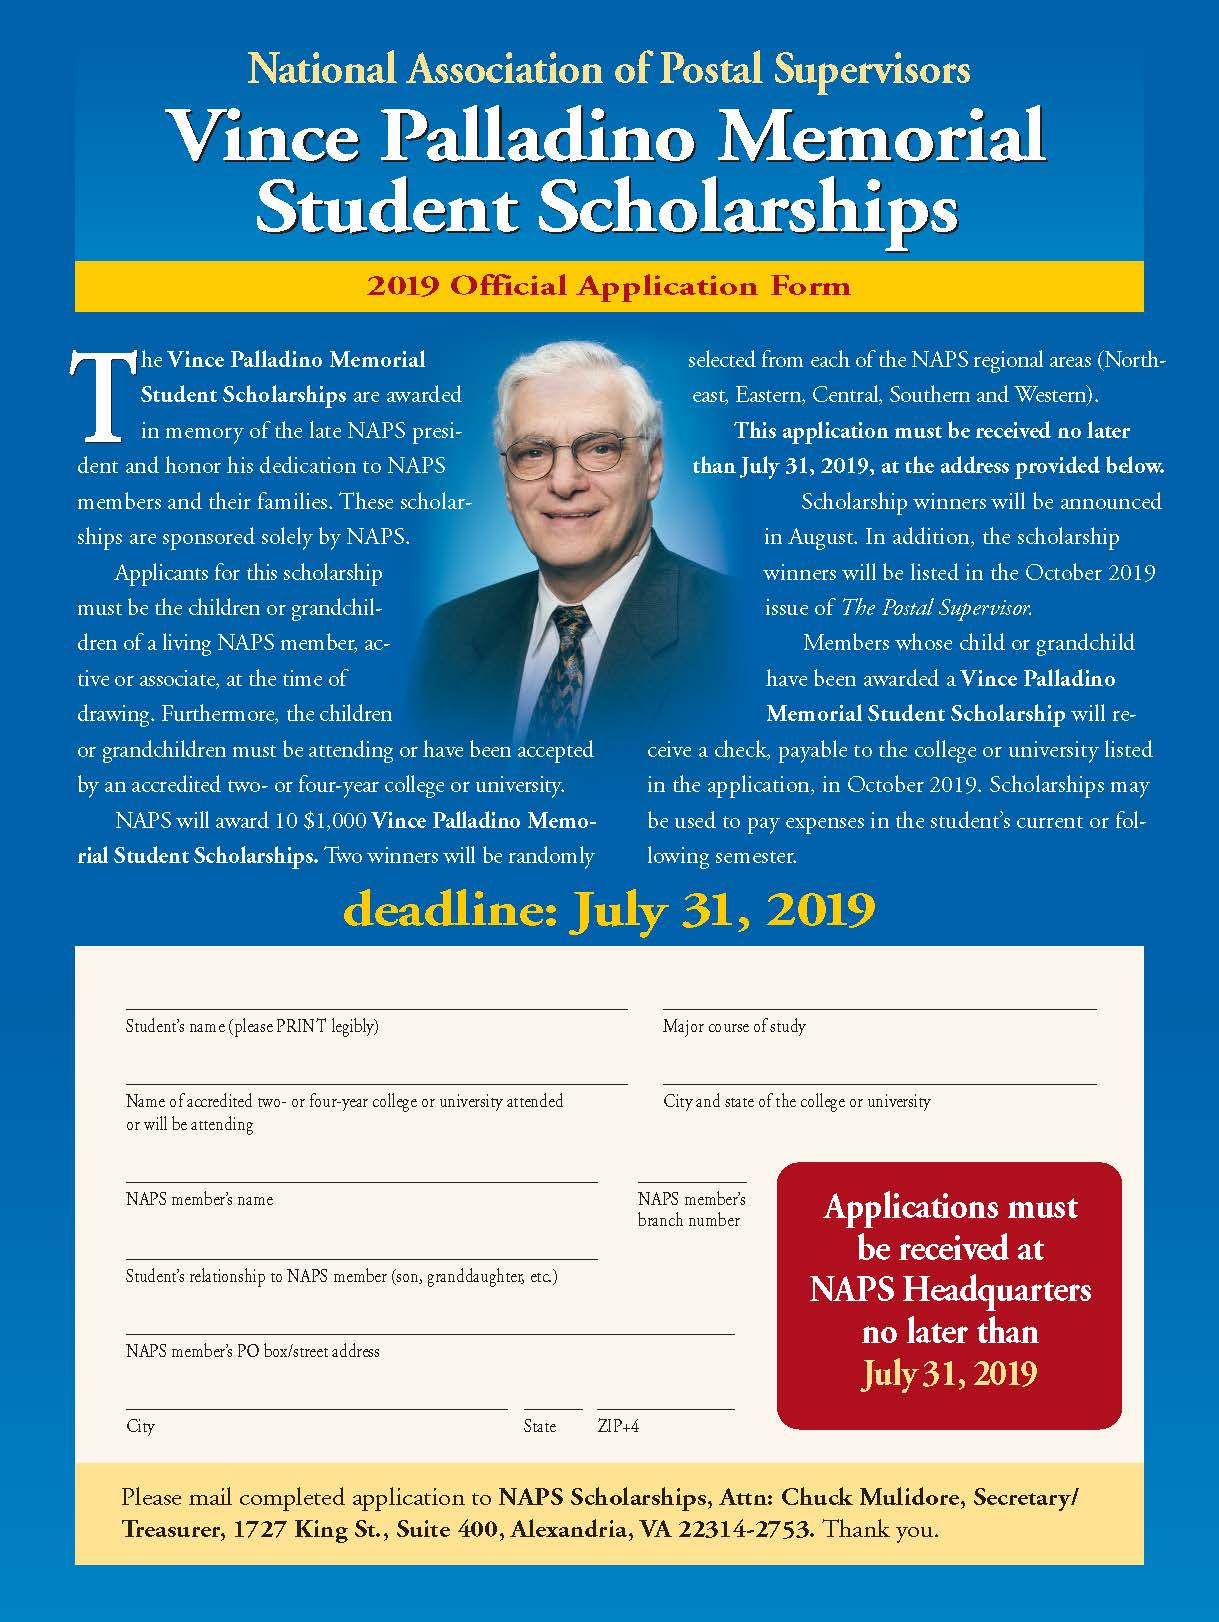 student scholarship application form online